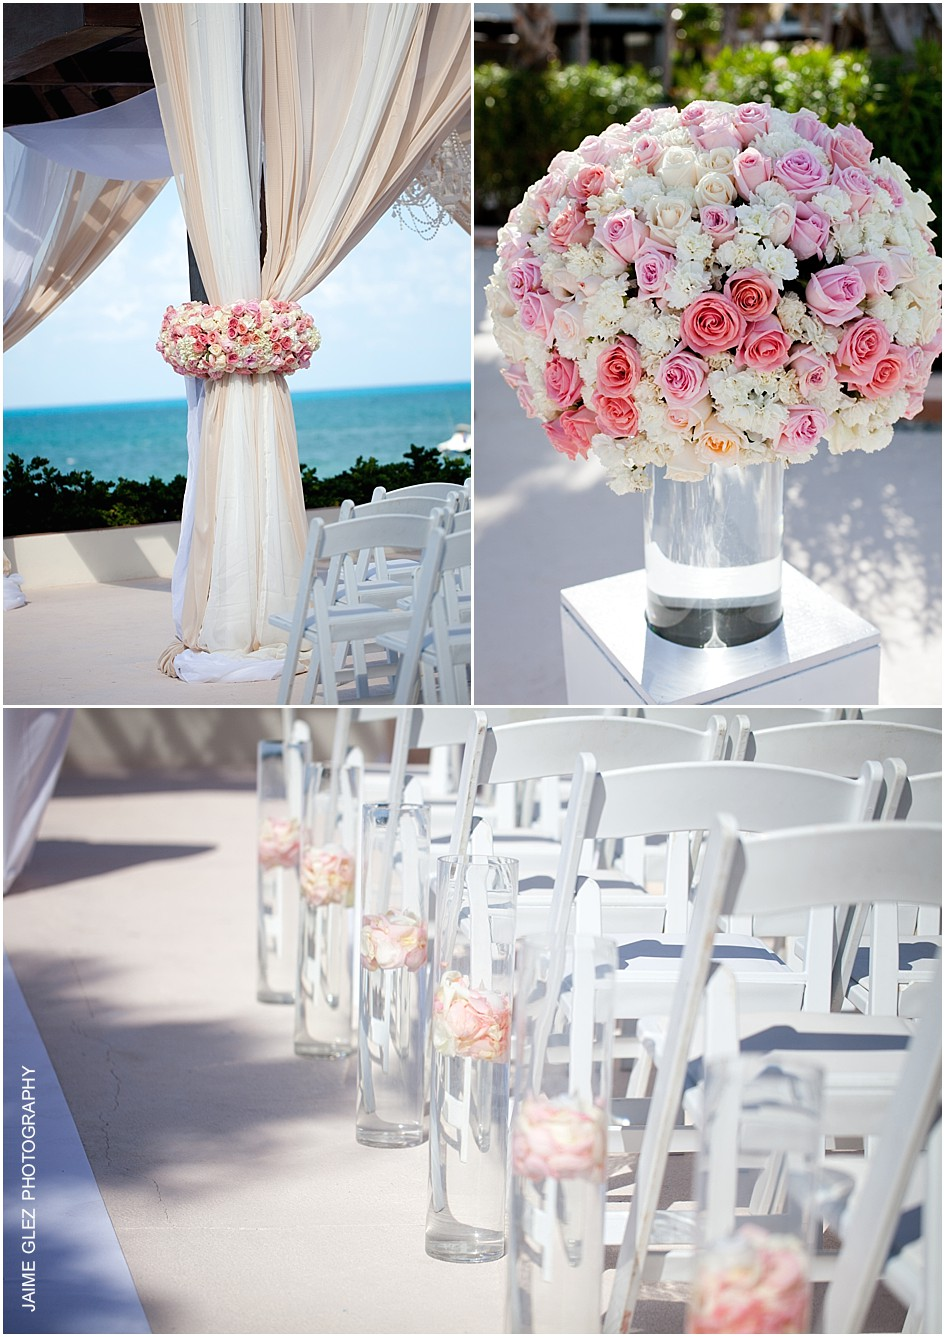 Lovely idea for beach wedding decor!